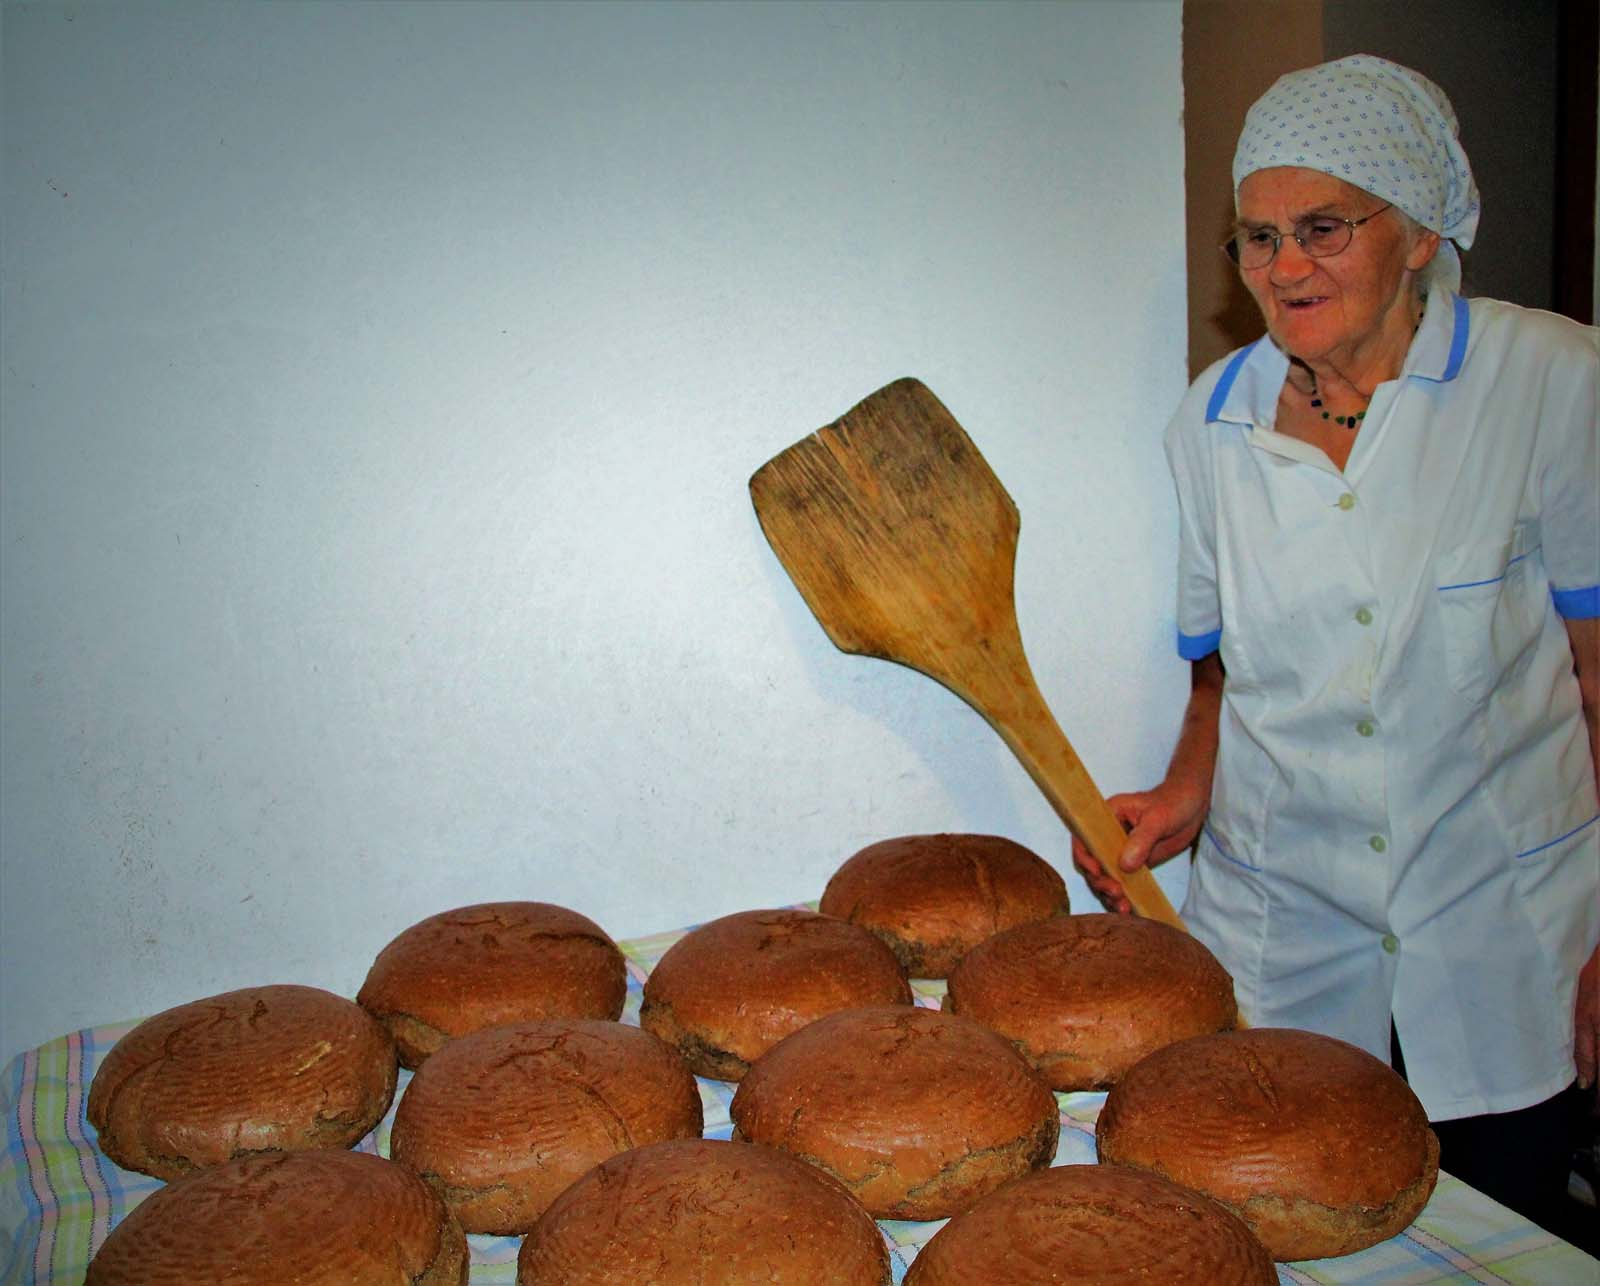 selfmade bread from Austria